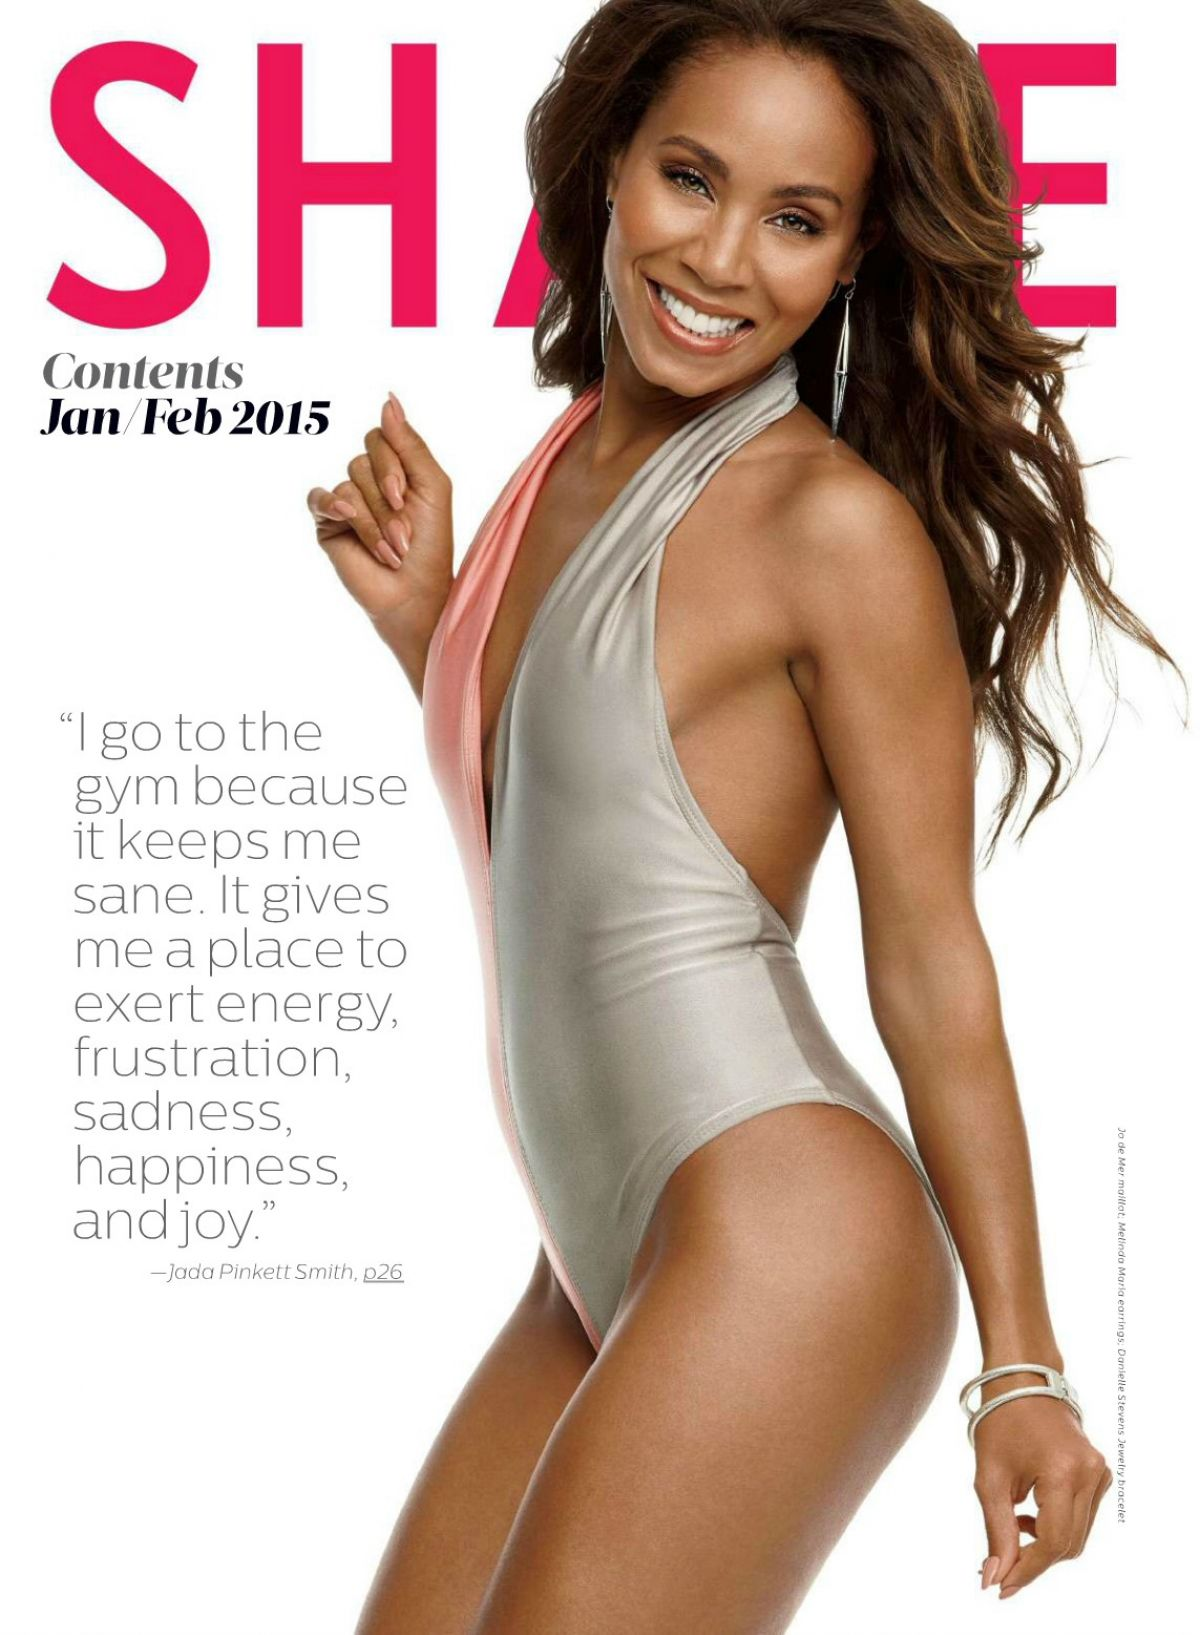 Jada Pinkett Smith Model Jada Pinkett Smith in Shape